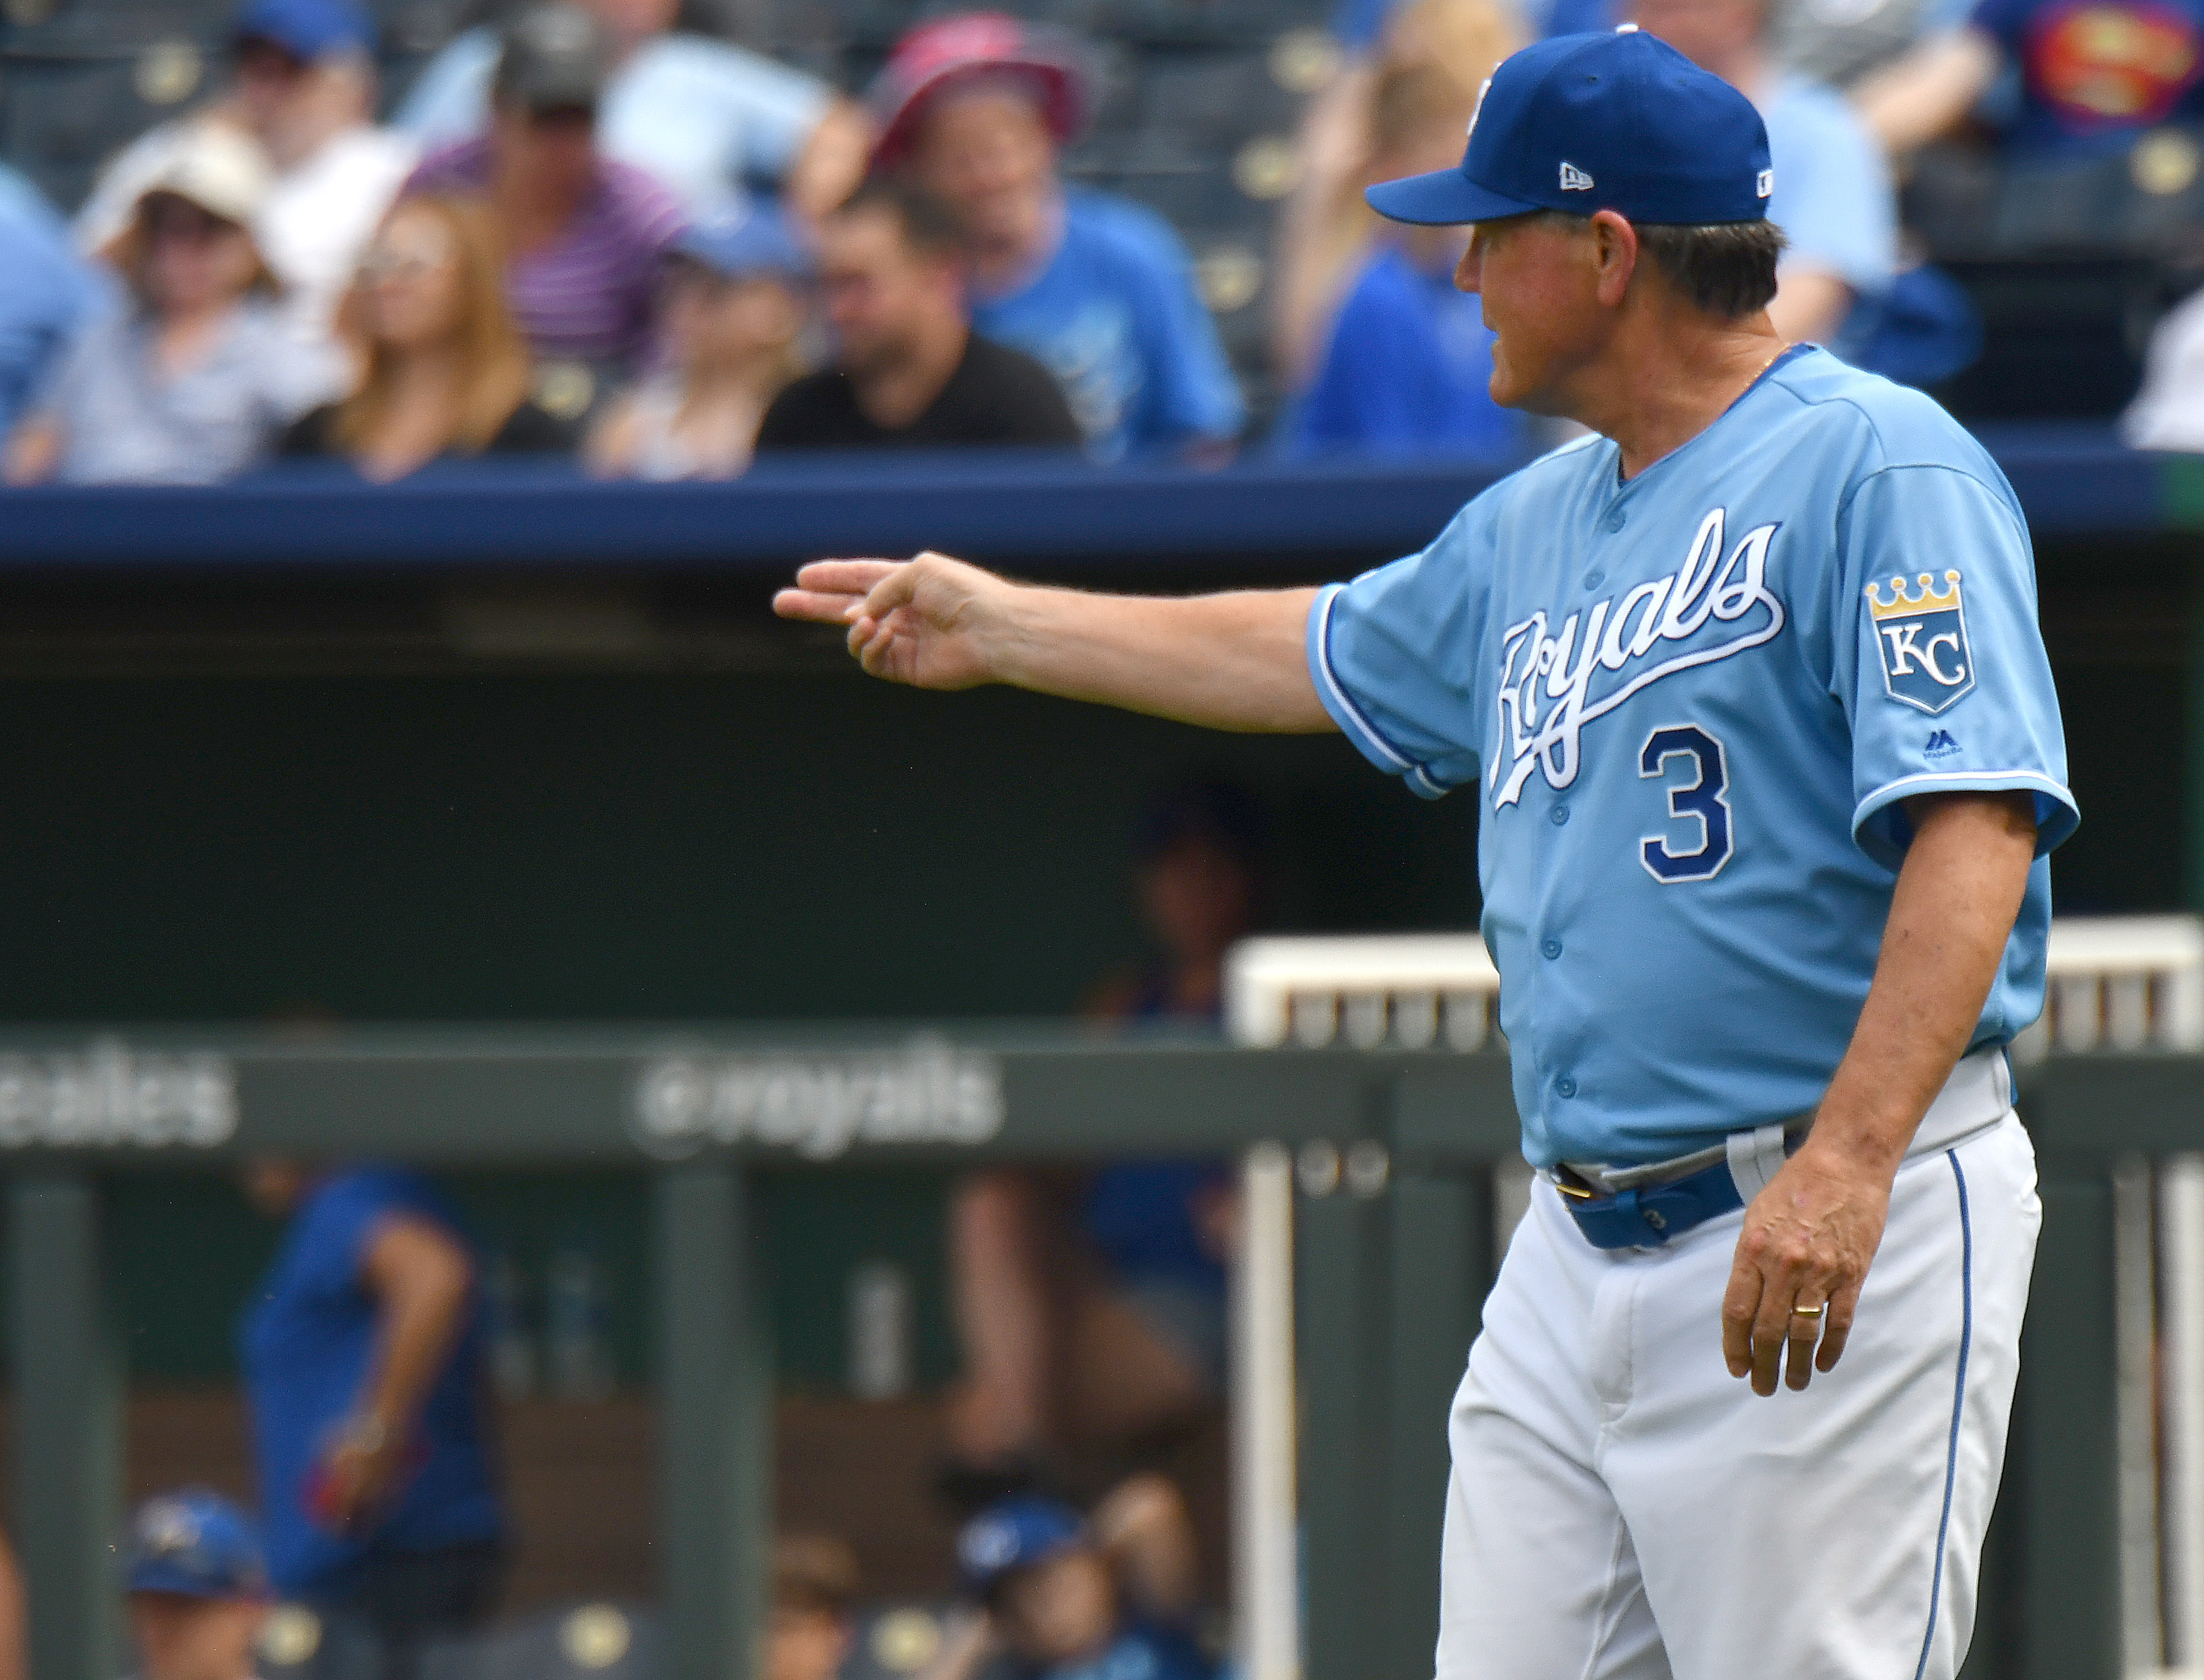 Kansas City Royals Manager Ned Yost signals a pitching change in the seventh inning during a Major League Baseball game between the Baltimore Orioles and the Kansas City Royals on September 01, 2019, at Kauffman Stadium, Kansas City, MO.